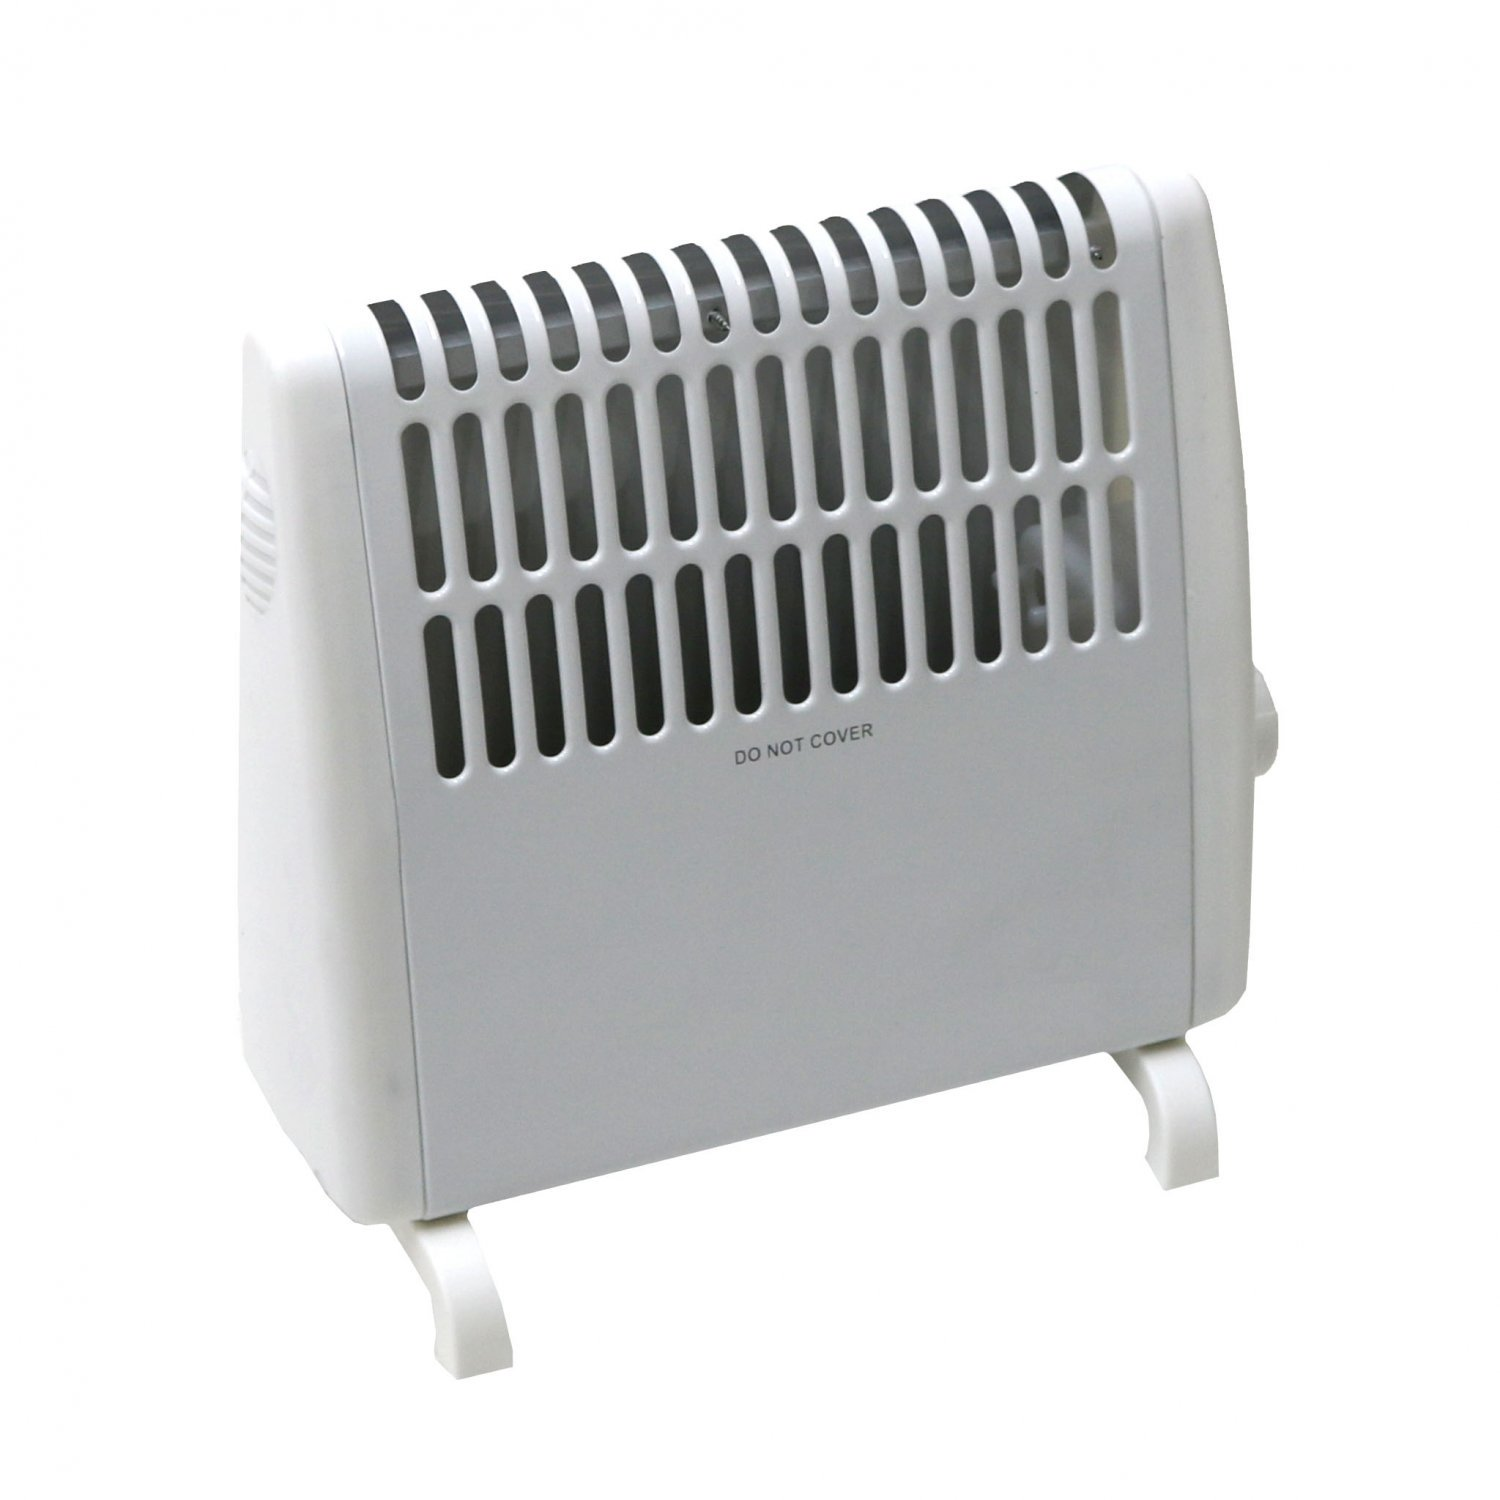 450W Frost Electric Convector Heater Free Standing Wall Mounted